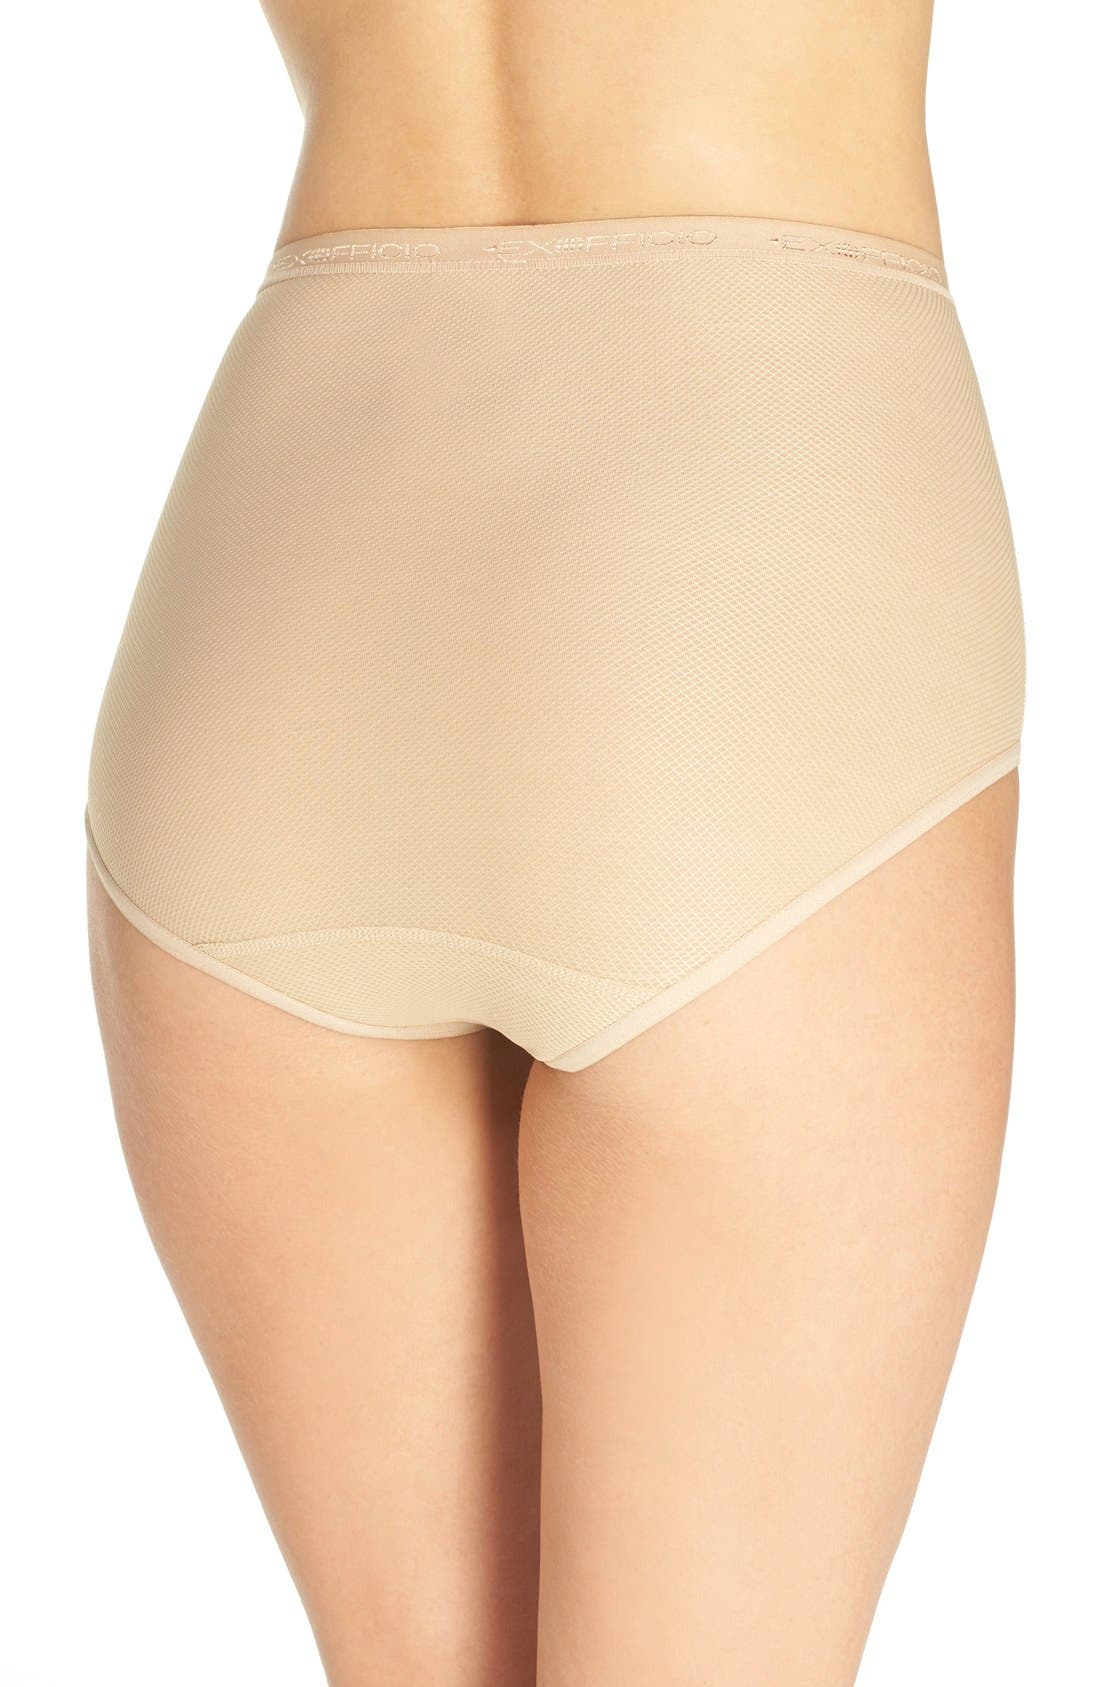 Give-N-Go<sup>®</sup> High Waist Sport Briefs,                             Alternate thumbnail 2, color,                             Nude